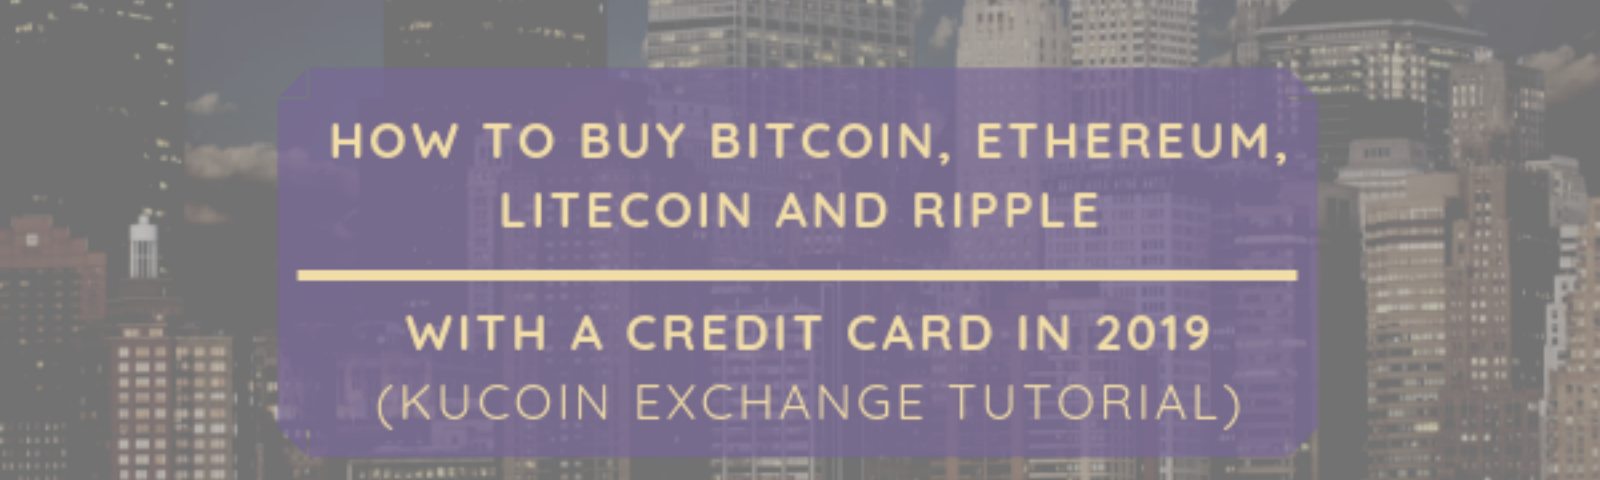 what exchange to you buy ripple cryptocurrency